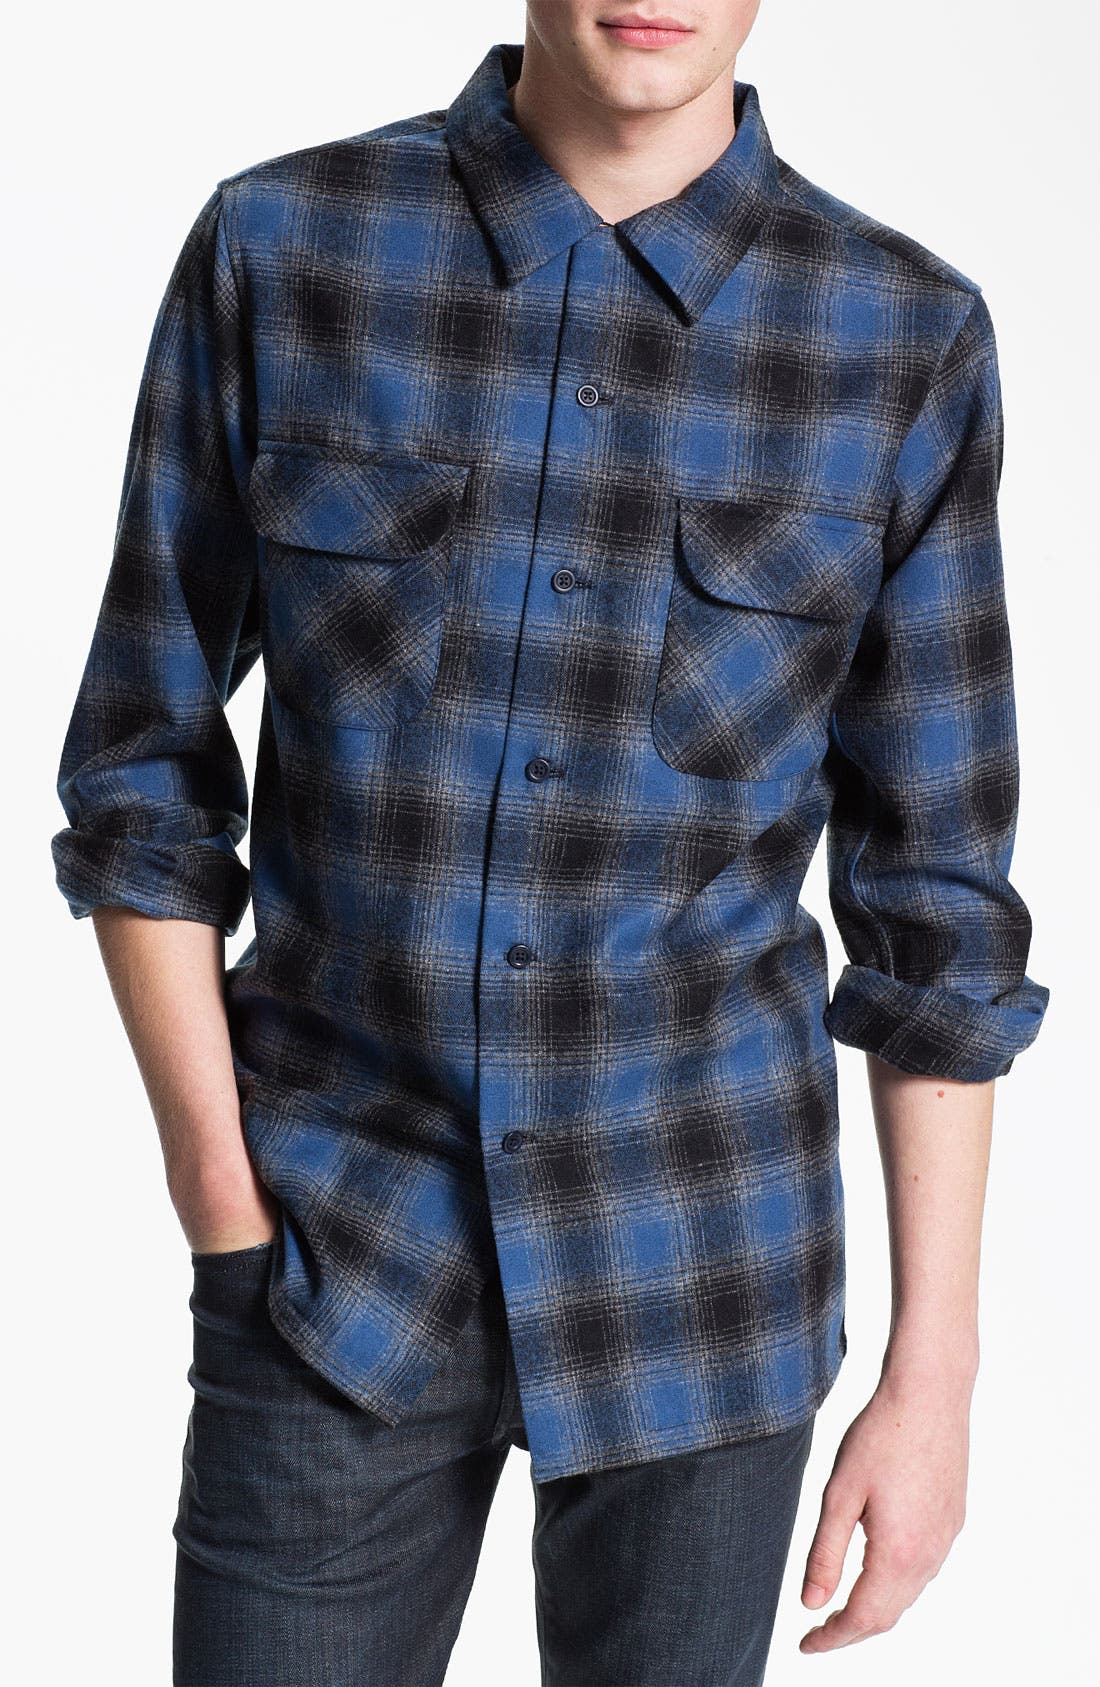 Alternate Image 1 Selected - Pendleton 'Board' Plaid Flannel Shirt